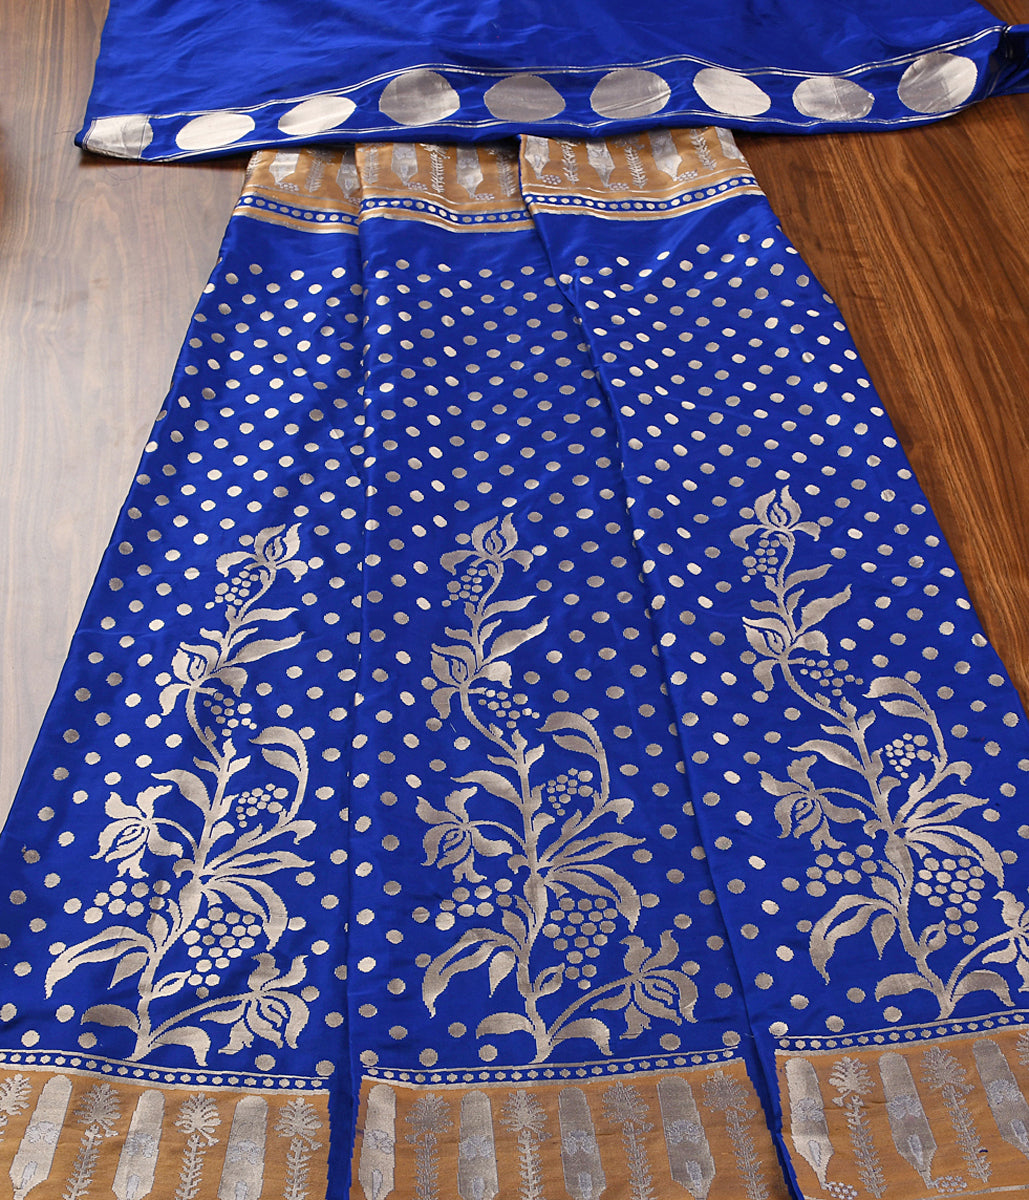 Handwoven Blue Kadhwa Lehenga with Gold and Silver Zari